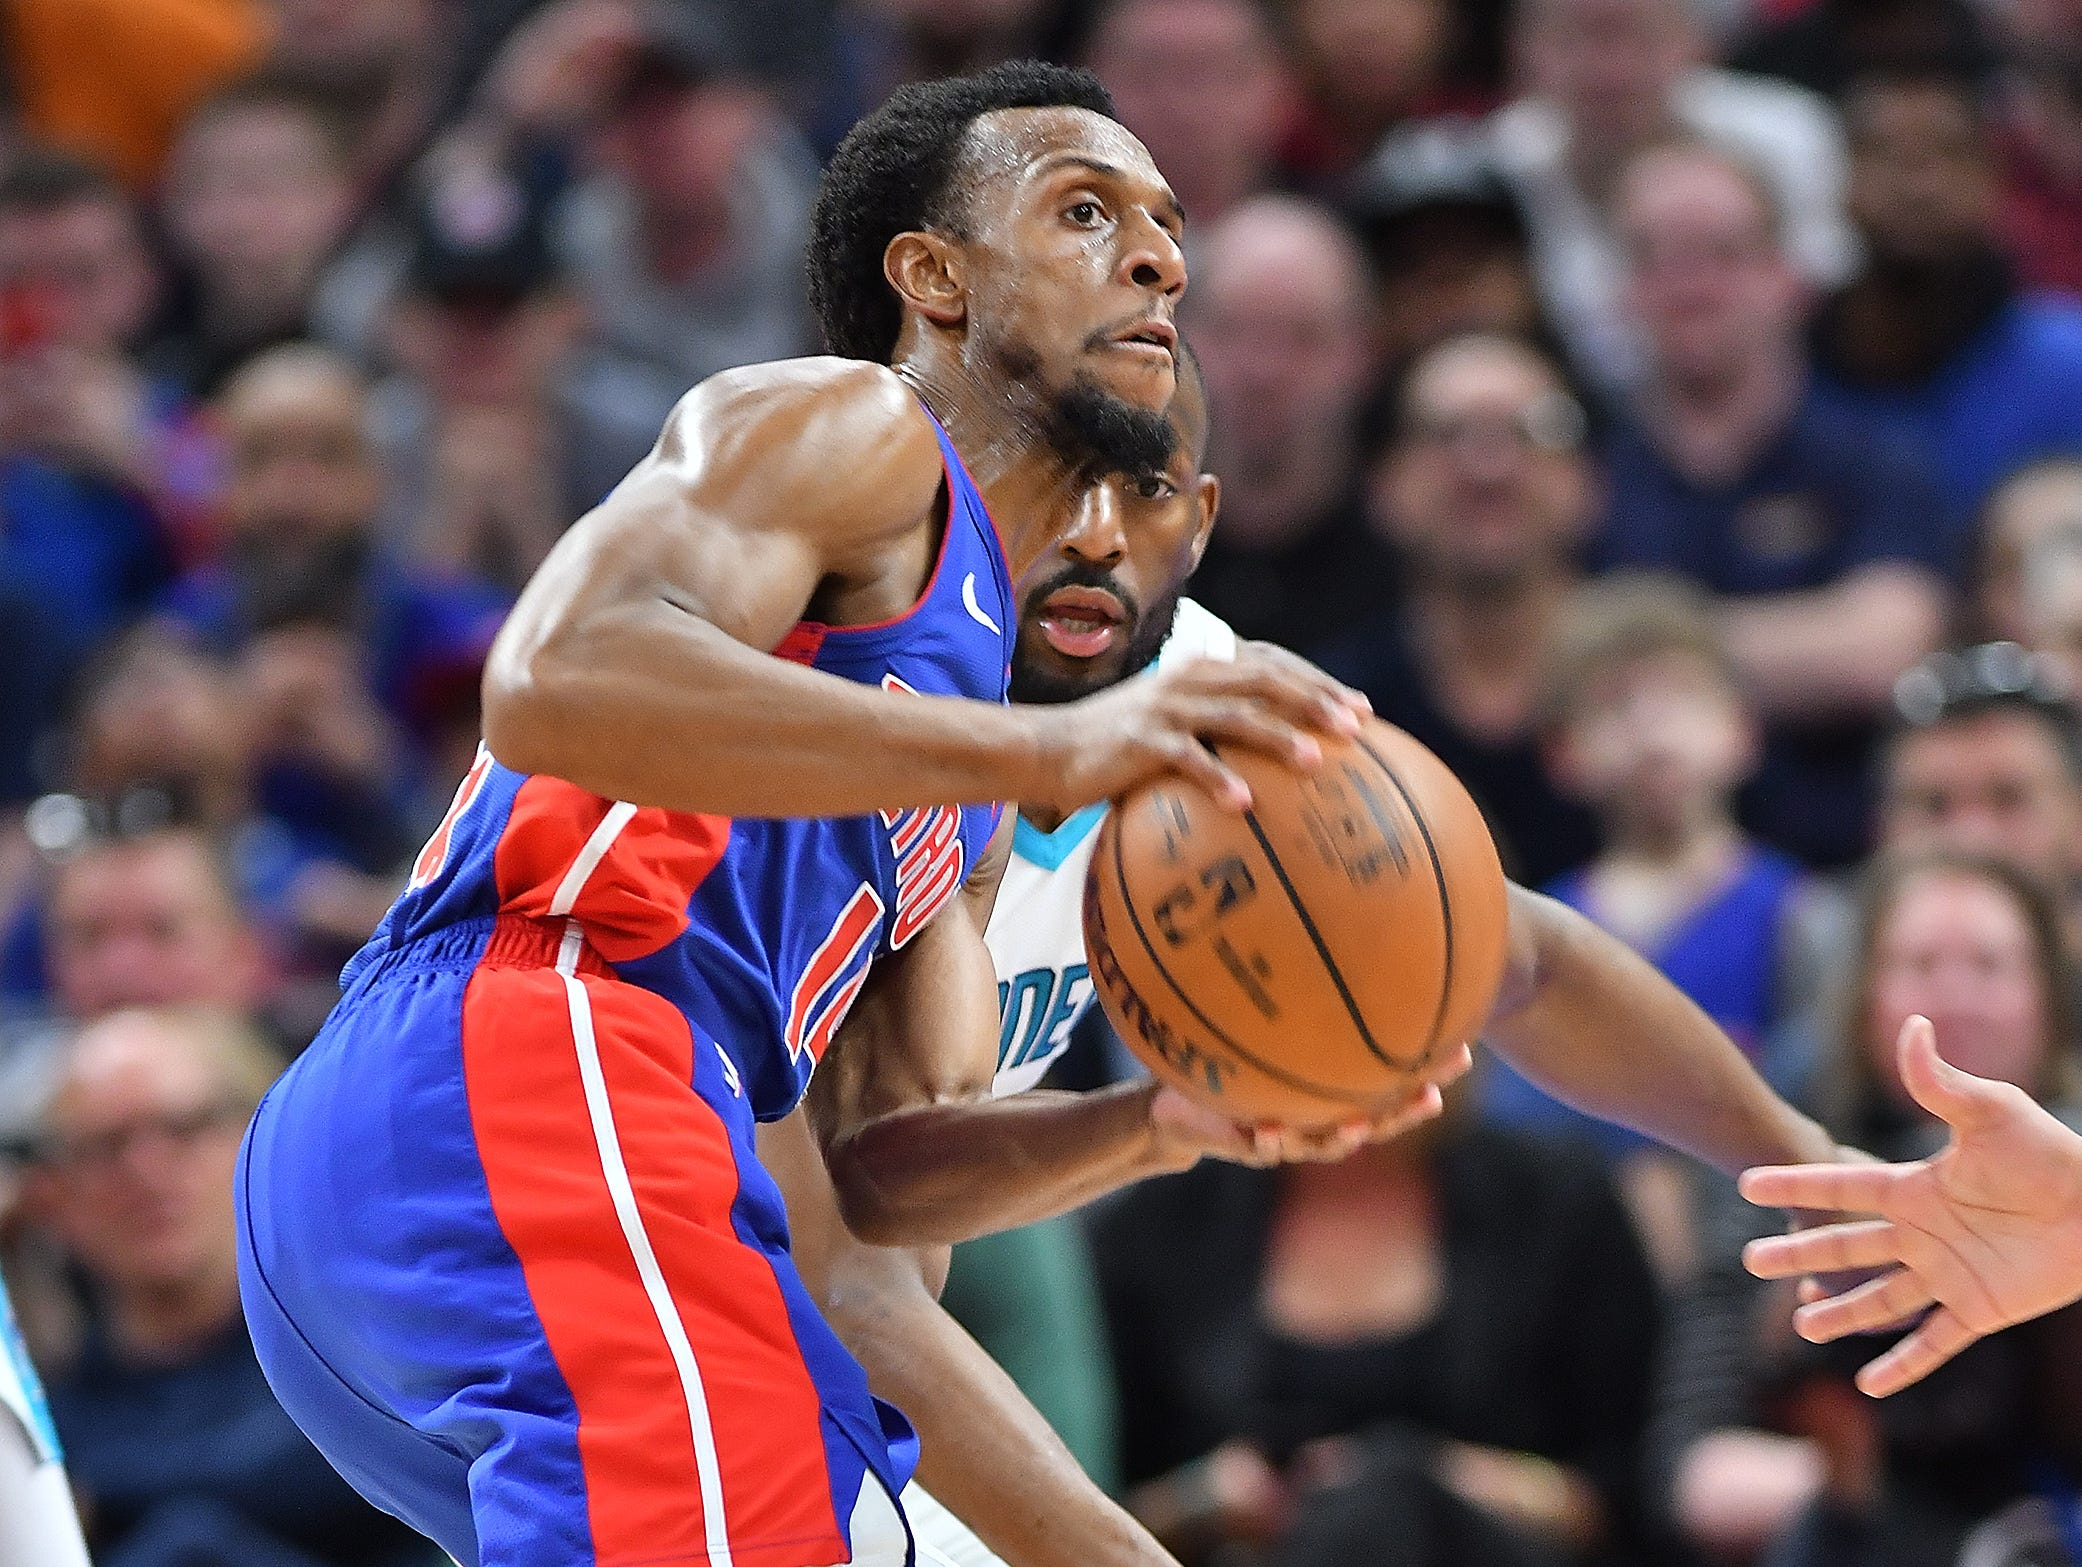 Pistons' Ish Smith looks to make a pass in front of Hornets' Kemba Walker in the fourth quarter.